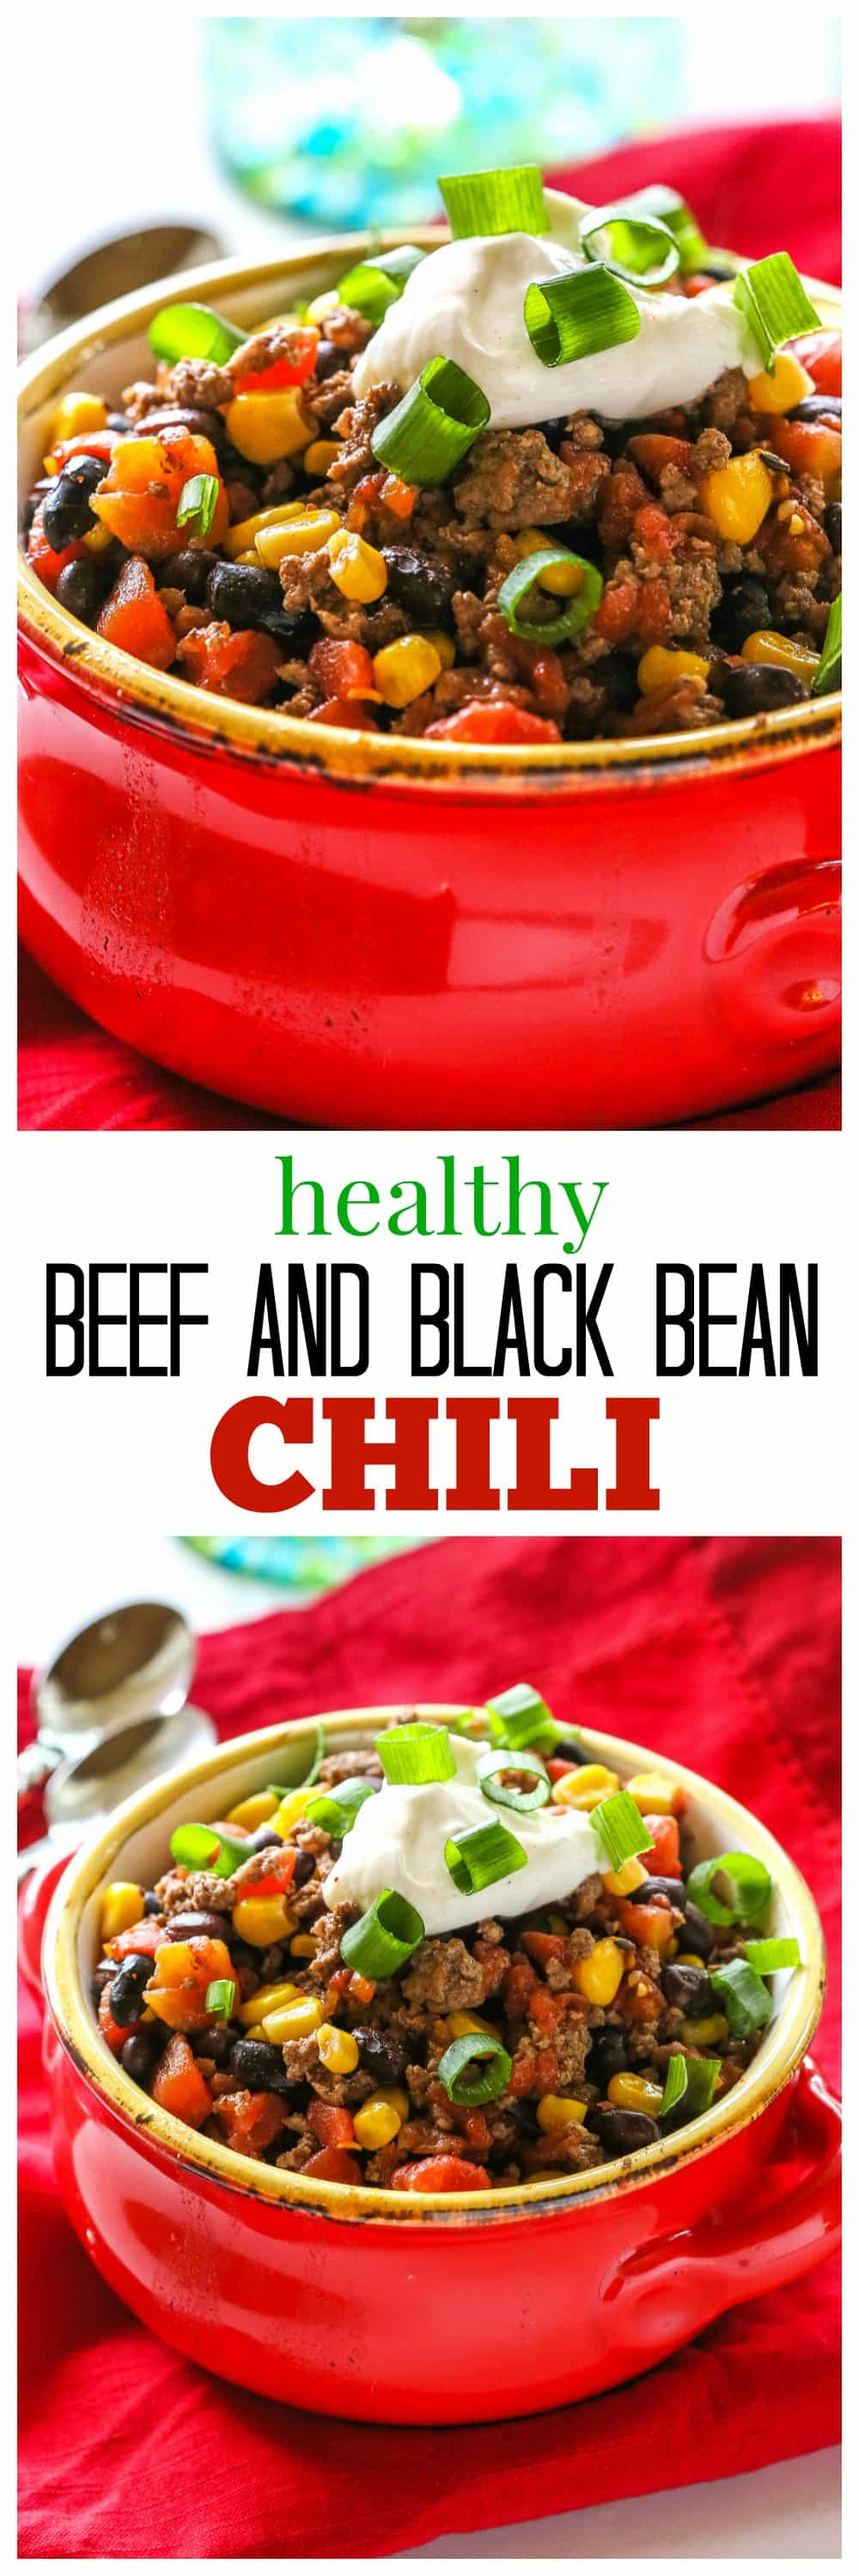 Healthy Spicy Beef and Black Bean Chili - 298 calories per serving! #healthy #black #bean #beef #chili #recipe